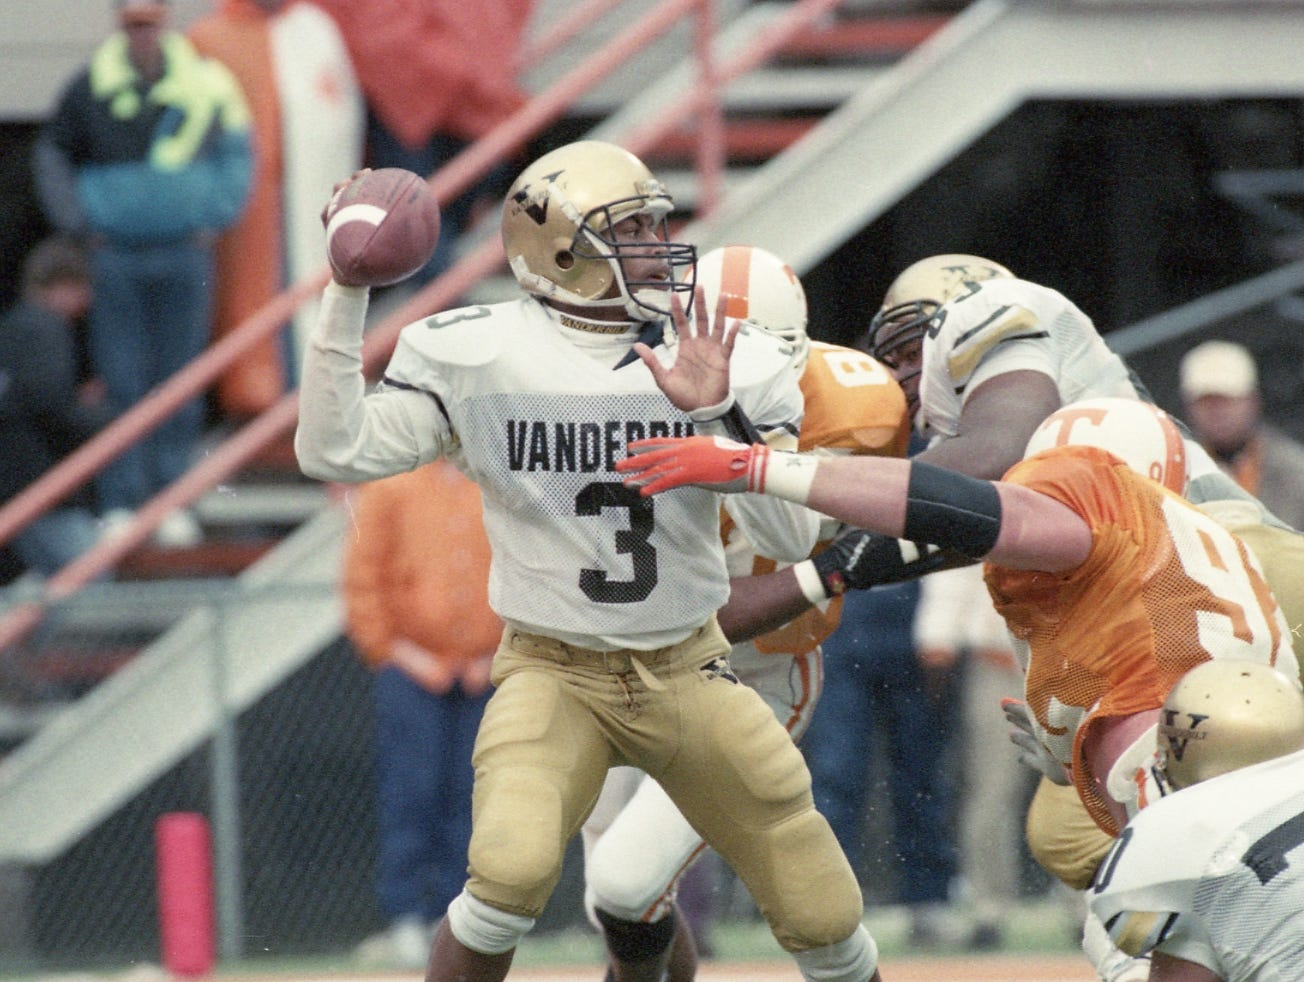 Vanderbilt quarterback Ronnie Gordon (3) was pressed by Tennessee's defense all day. Tennessee's Shane Boham reaches for Gordon during first half play on November 27, 1993.